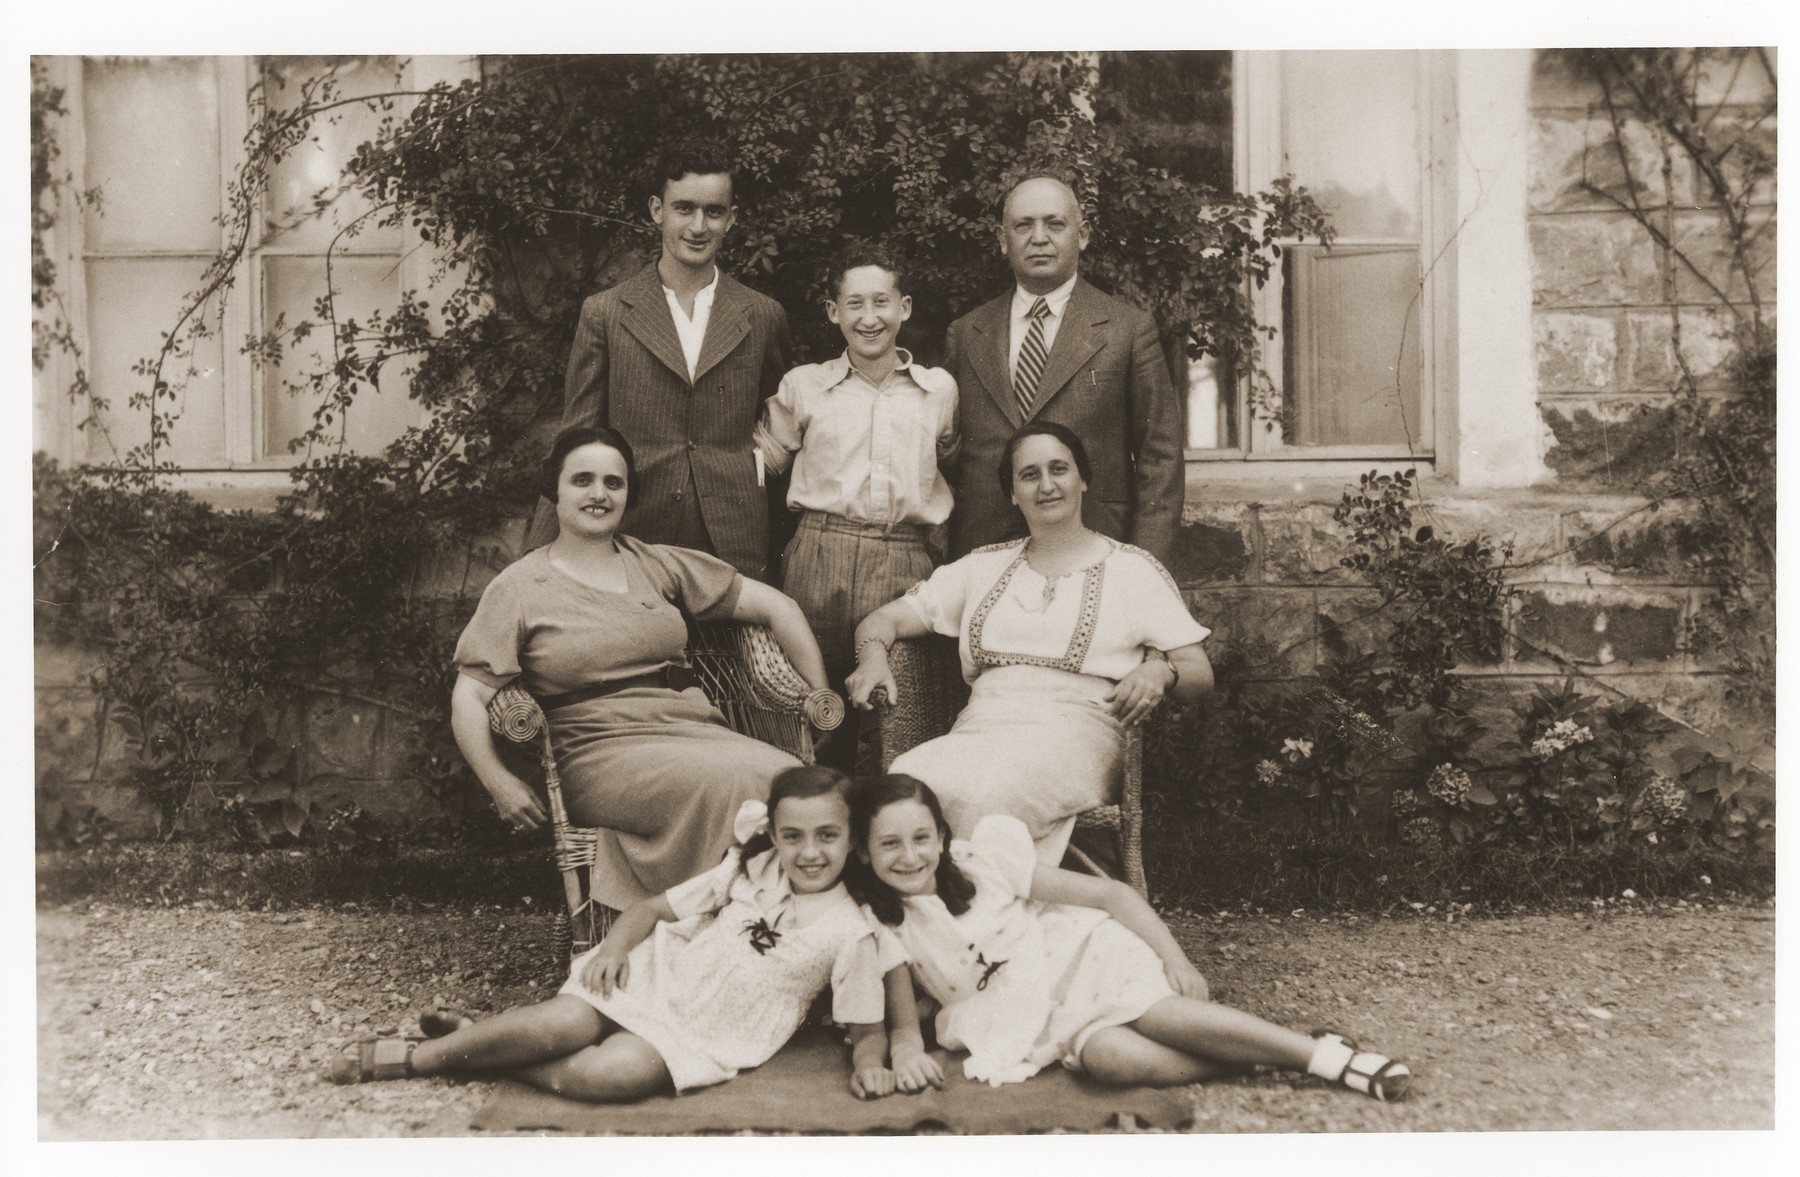 Portrait of the Amarillo family outside their home in Salonika.  Pictured in front, from left to right front are, Tillie Amarillo and Sarika Yahiel.  Seated behind them are their mothers Louisa Bourla Amarillo and Regina Amarillo Yahiel.  Standing in back are, Saul Amarillo, Isaccino Yahiel and Isaac Yahiel.  Tillie Amarillo survived the war in hiding and married Dr. Rene Molho, a survivor of Auschwitz, in March 1946.